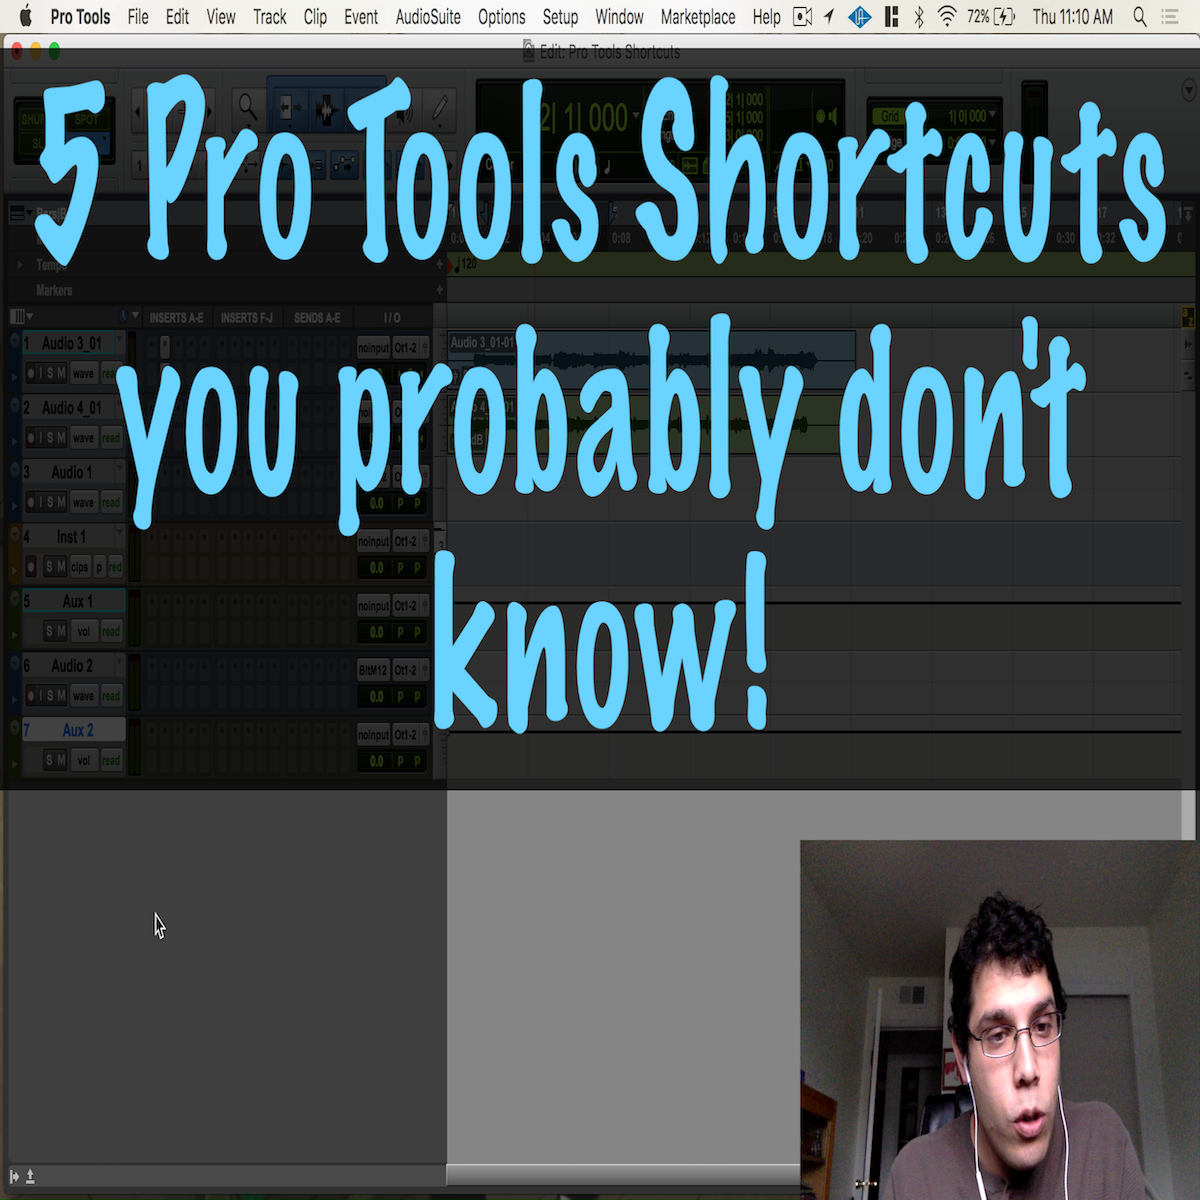 5 Pro Tools Shortcuts You Probably Don't Know!